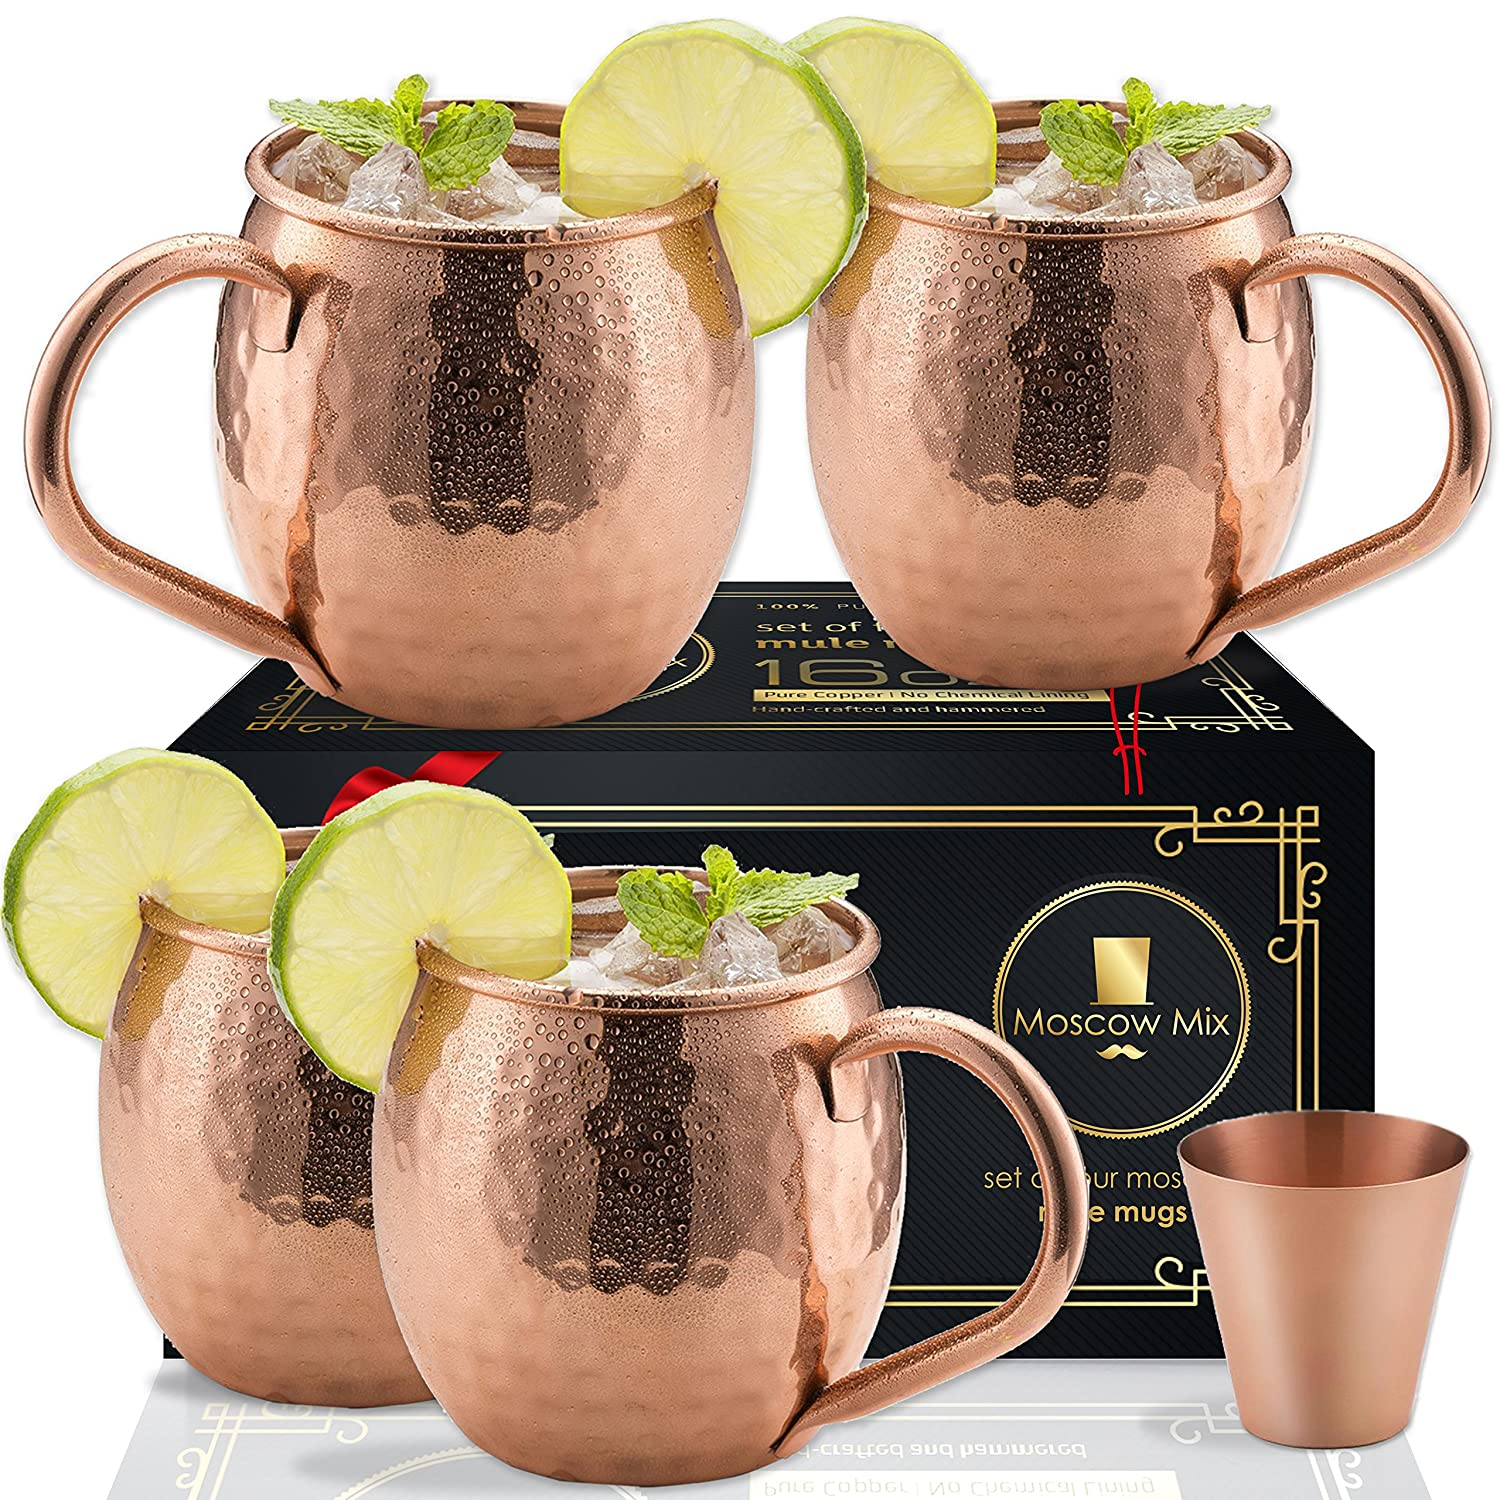 Moscow Mule Copper Mugs Set of 4 - Solid Copper Handcrafted Copper Mugs for Moscow Mule Cocktail - 16 Ounce - Shot Glass Included Moscow-Mix® MM-001